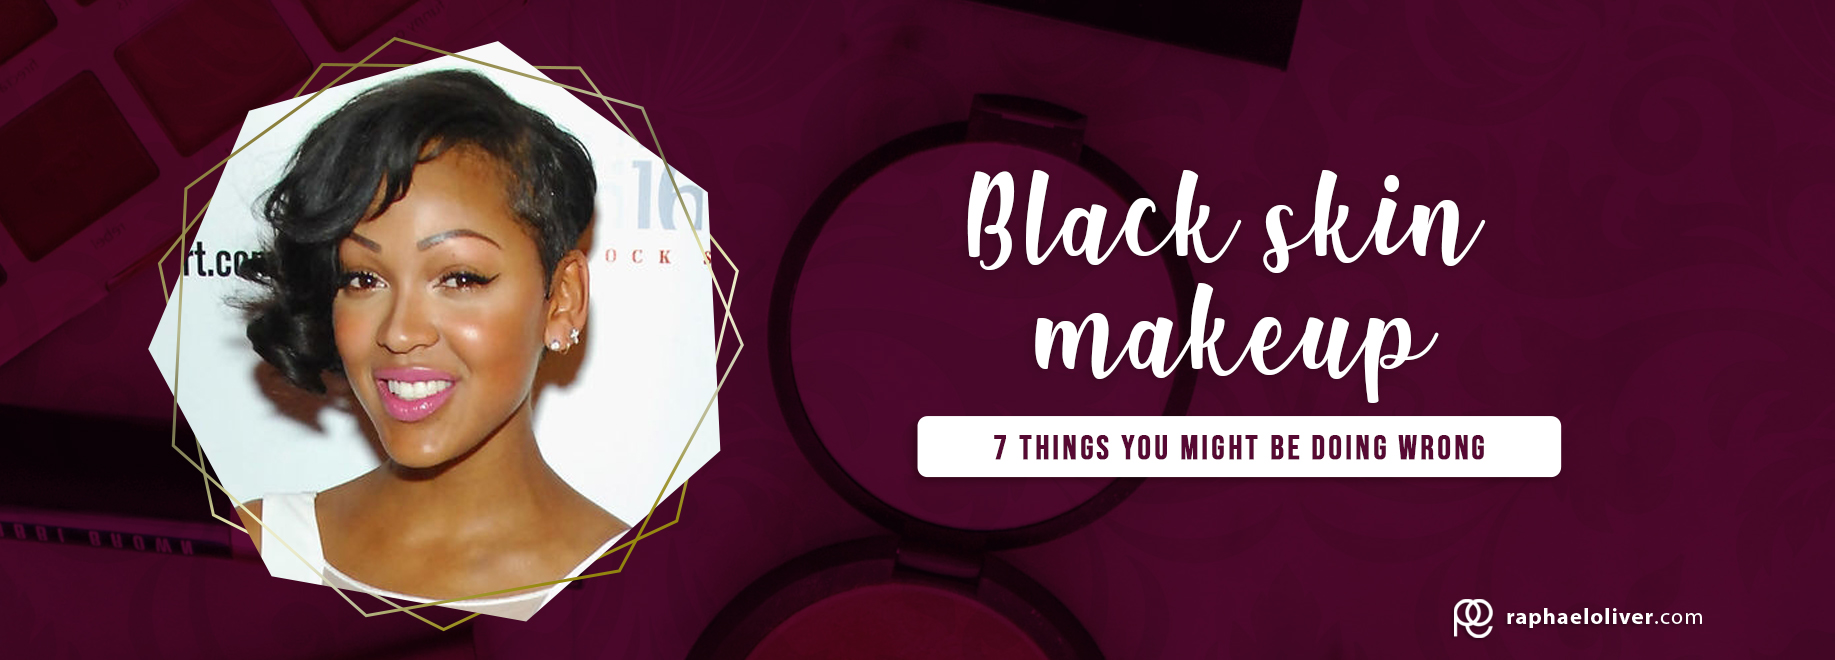 Black skin makeup: 7 things you might be doing wrong